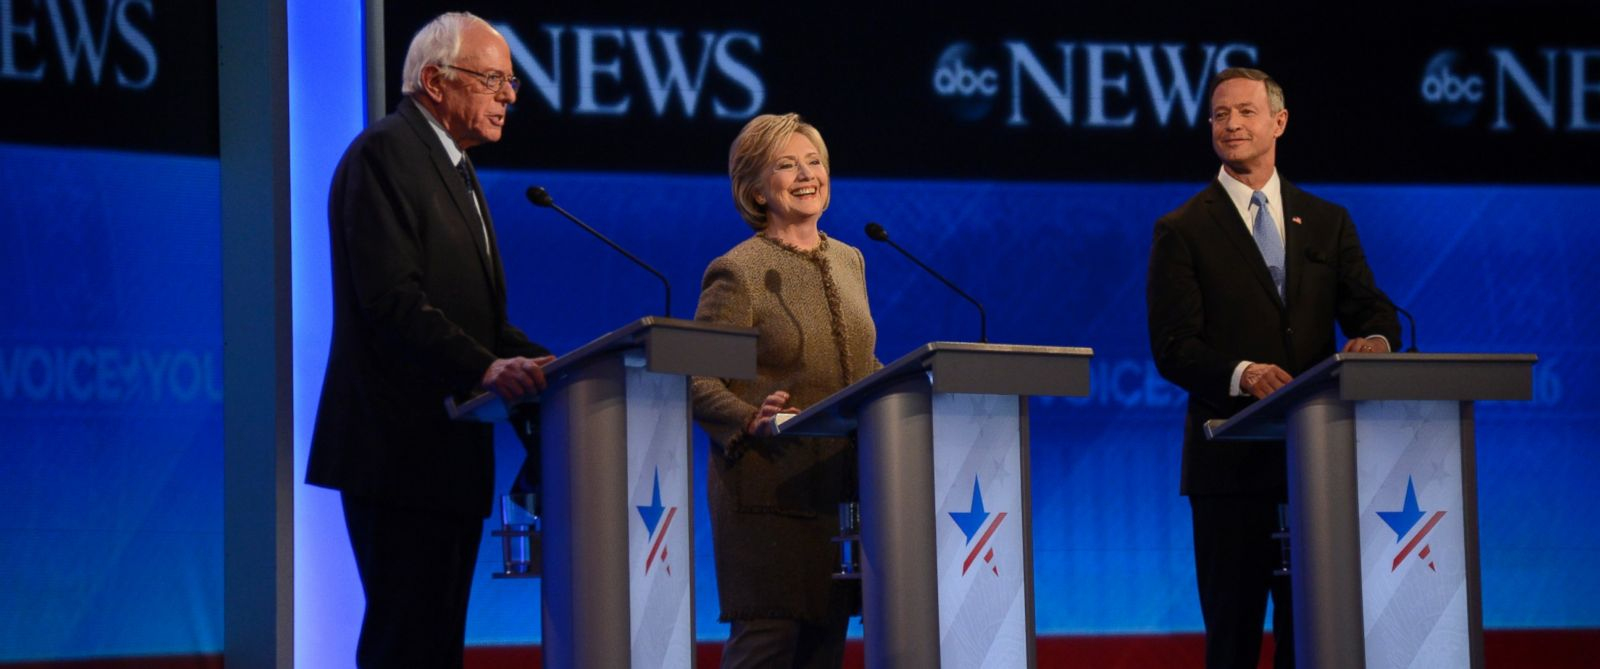 PHOTO: Sen. Bernie Sanders, Hillary Clinton and Martin OMalley at the Democratic debate in Manchester, N.H., Dec. 19, 2015.